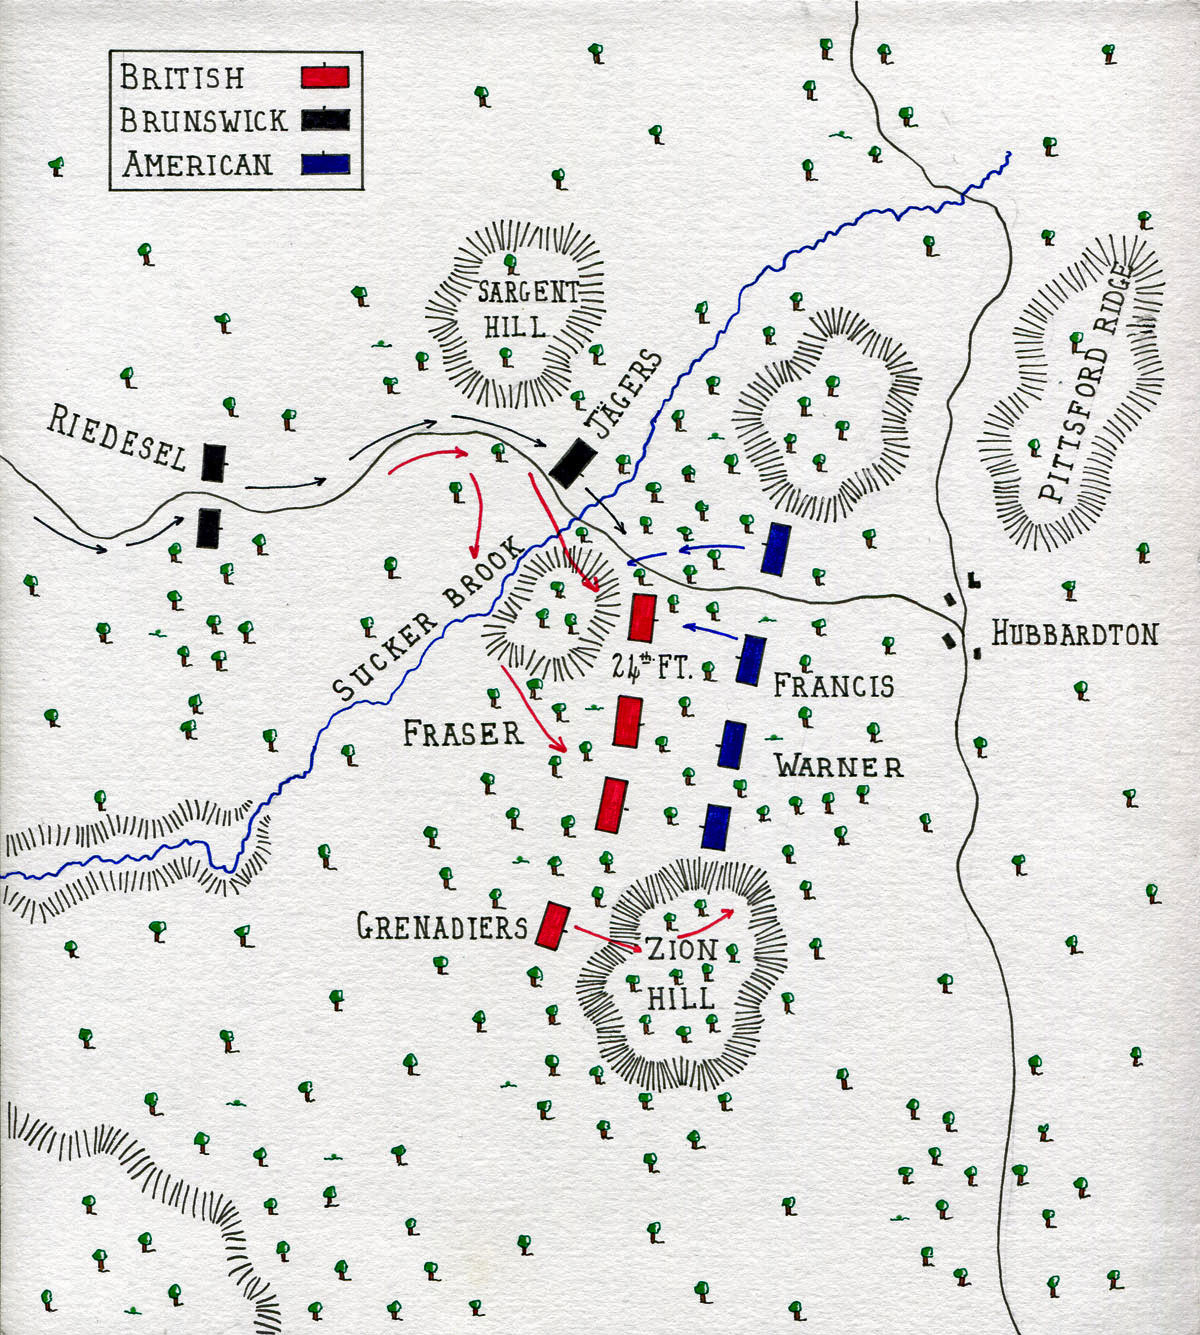 Map of the Battle of Hubbardton on 7th July 1777 in the American Revolutionary War: map by John Fawkes